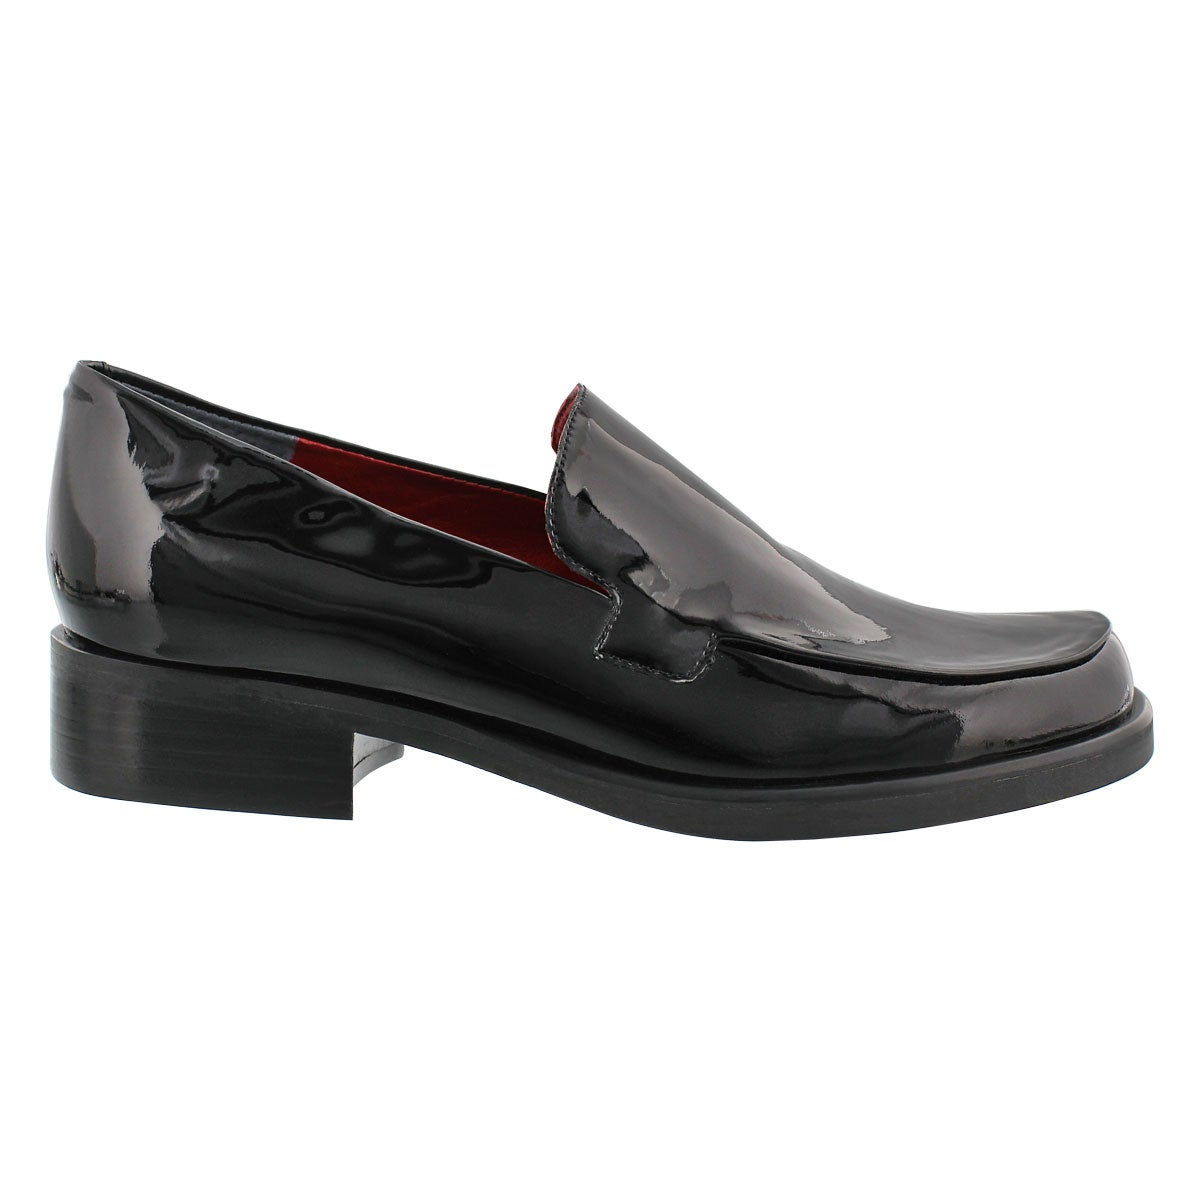 Lds Bocca blk patent slip on loafer